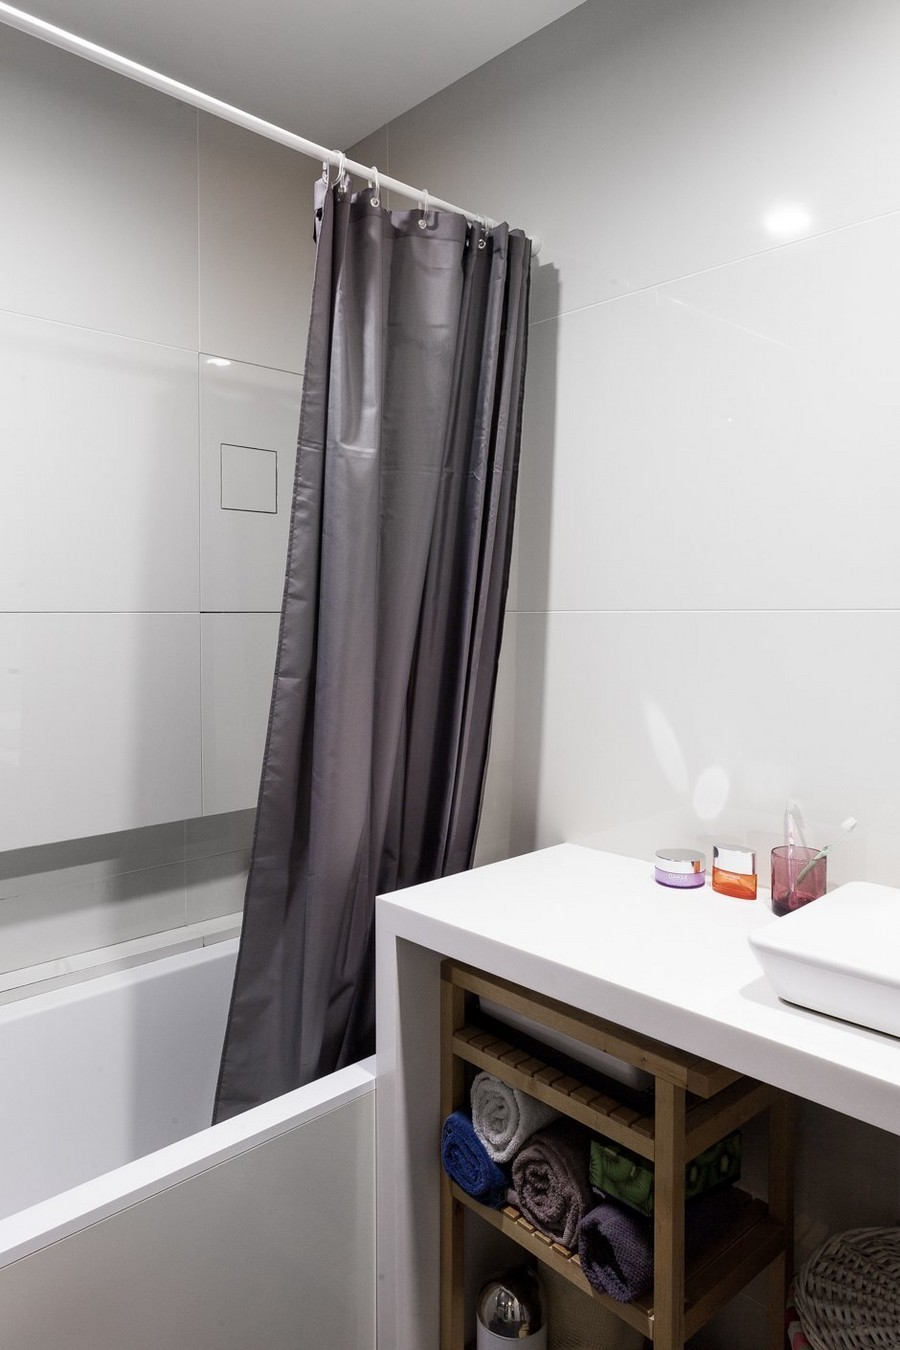 13-minimalist-style-ascetic-interior-white-walls-wooden-vanity-unit-bathroom-towel-storage-gray-shower-curtain-bathtub-bath